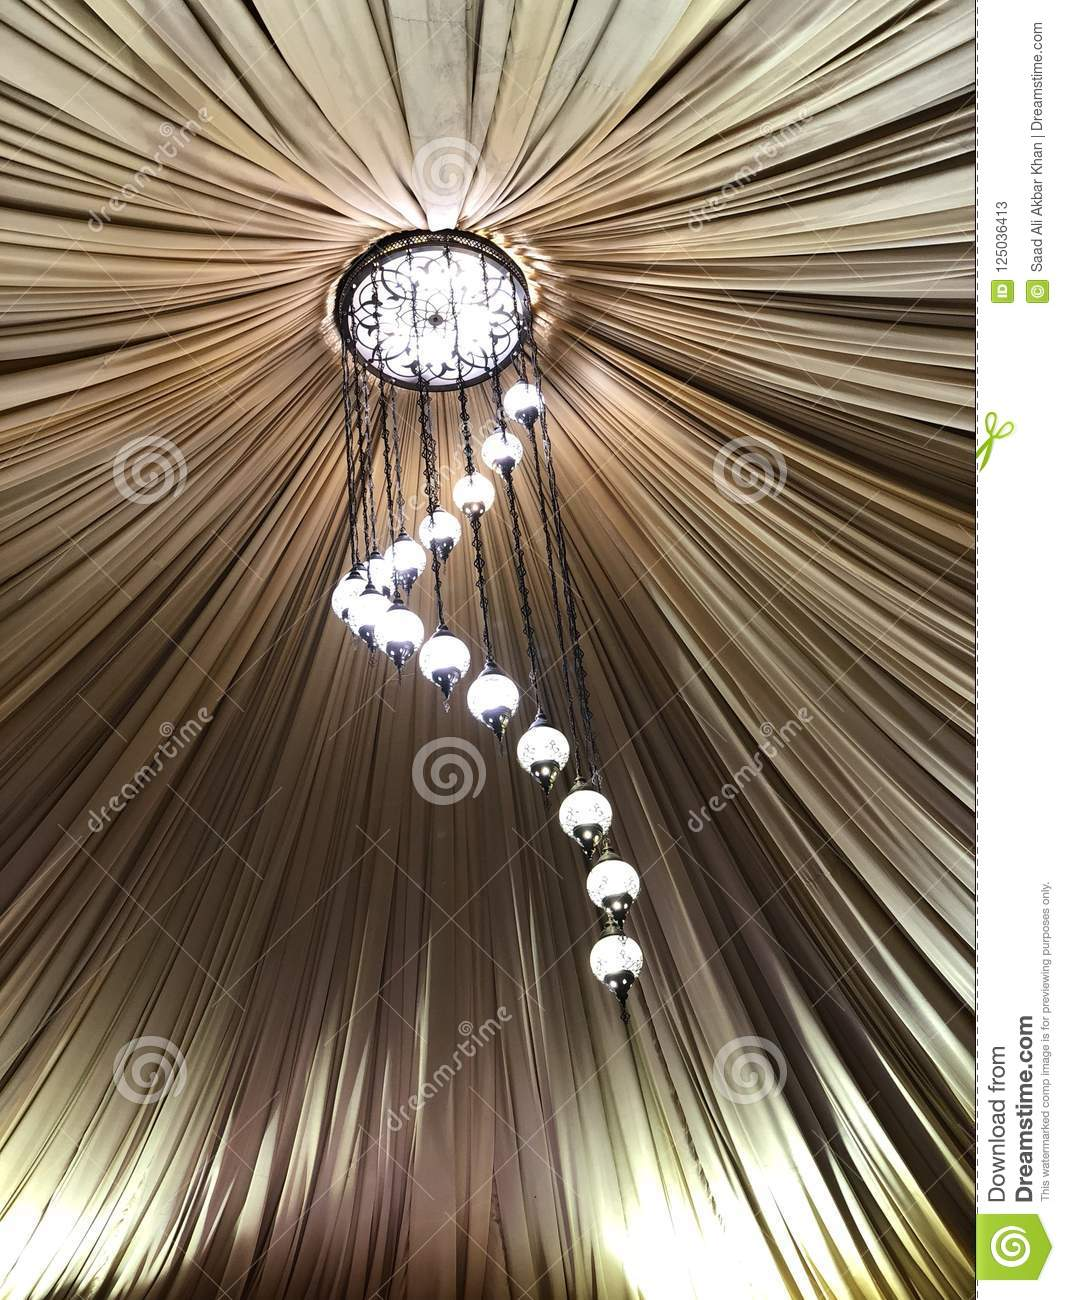 Decorated Tent With Bulb Garland Wedding Setup White Paper Lanterns Inside Of Building Under Cloth Roof Decoration Stock Image Image Of Decoration Inside 125036413